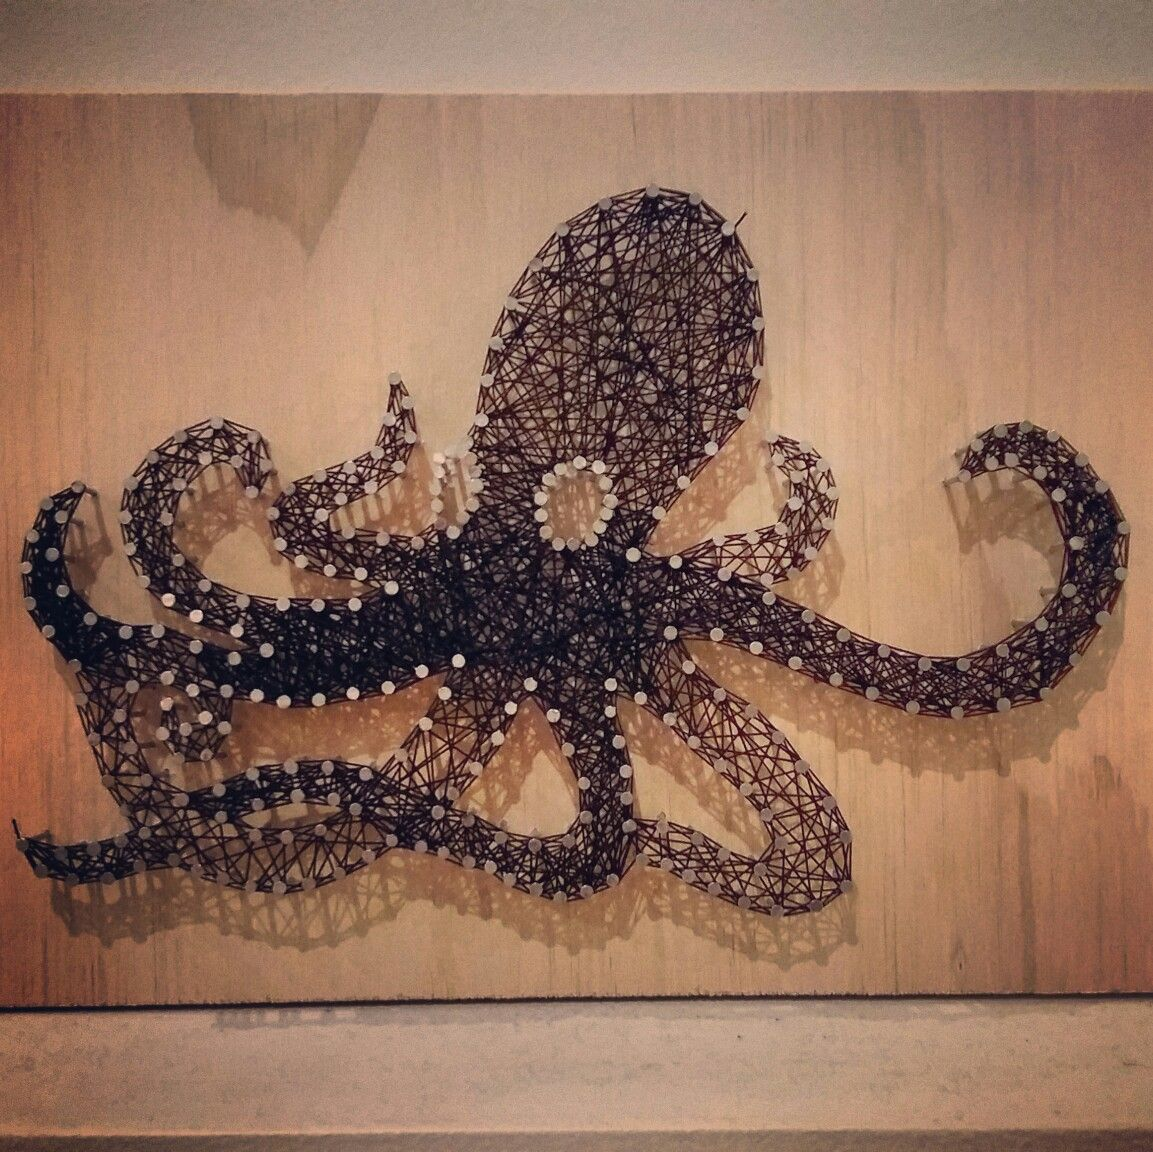 Octopus nail string art artsy fartsy pinterest for Diy nail and string art